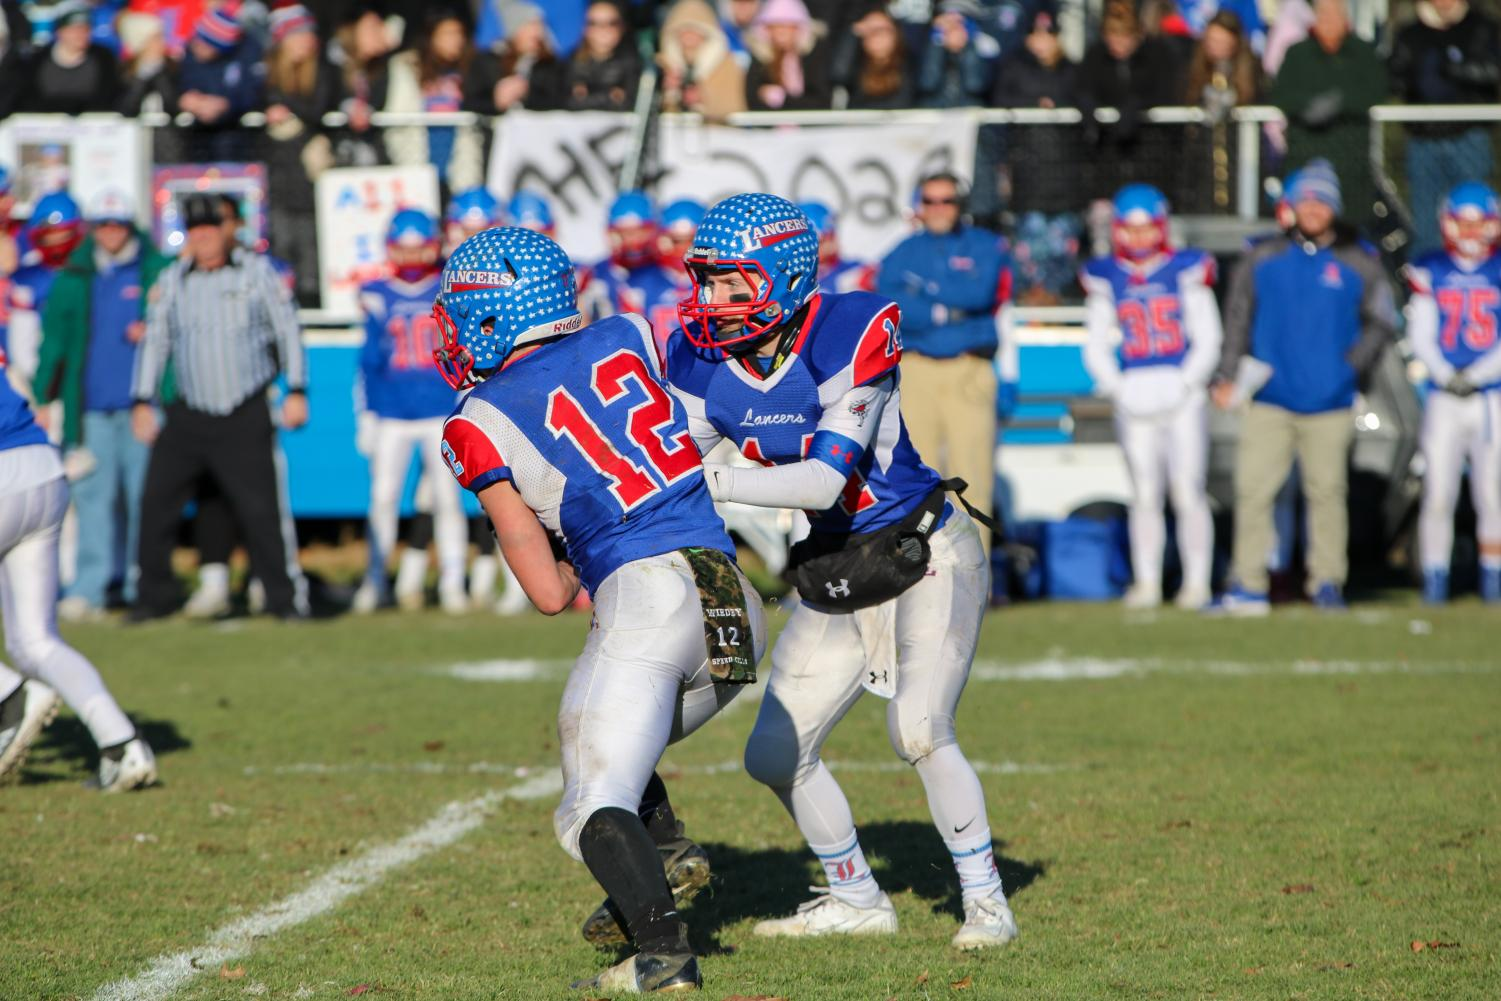 Quarterback Jake McEachern hands the ball off to running back Jeff Wiedenfeld. The Lancers defeated Salem in the Division One Semifinals and advanced to the state championship.